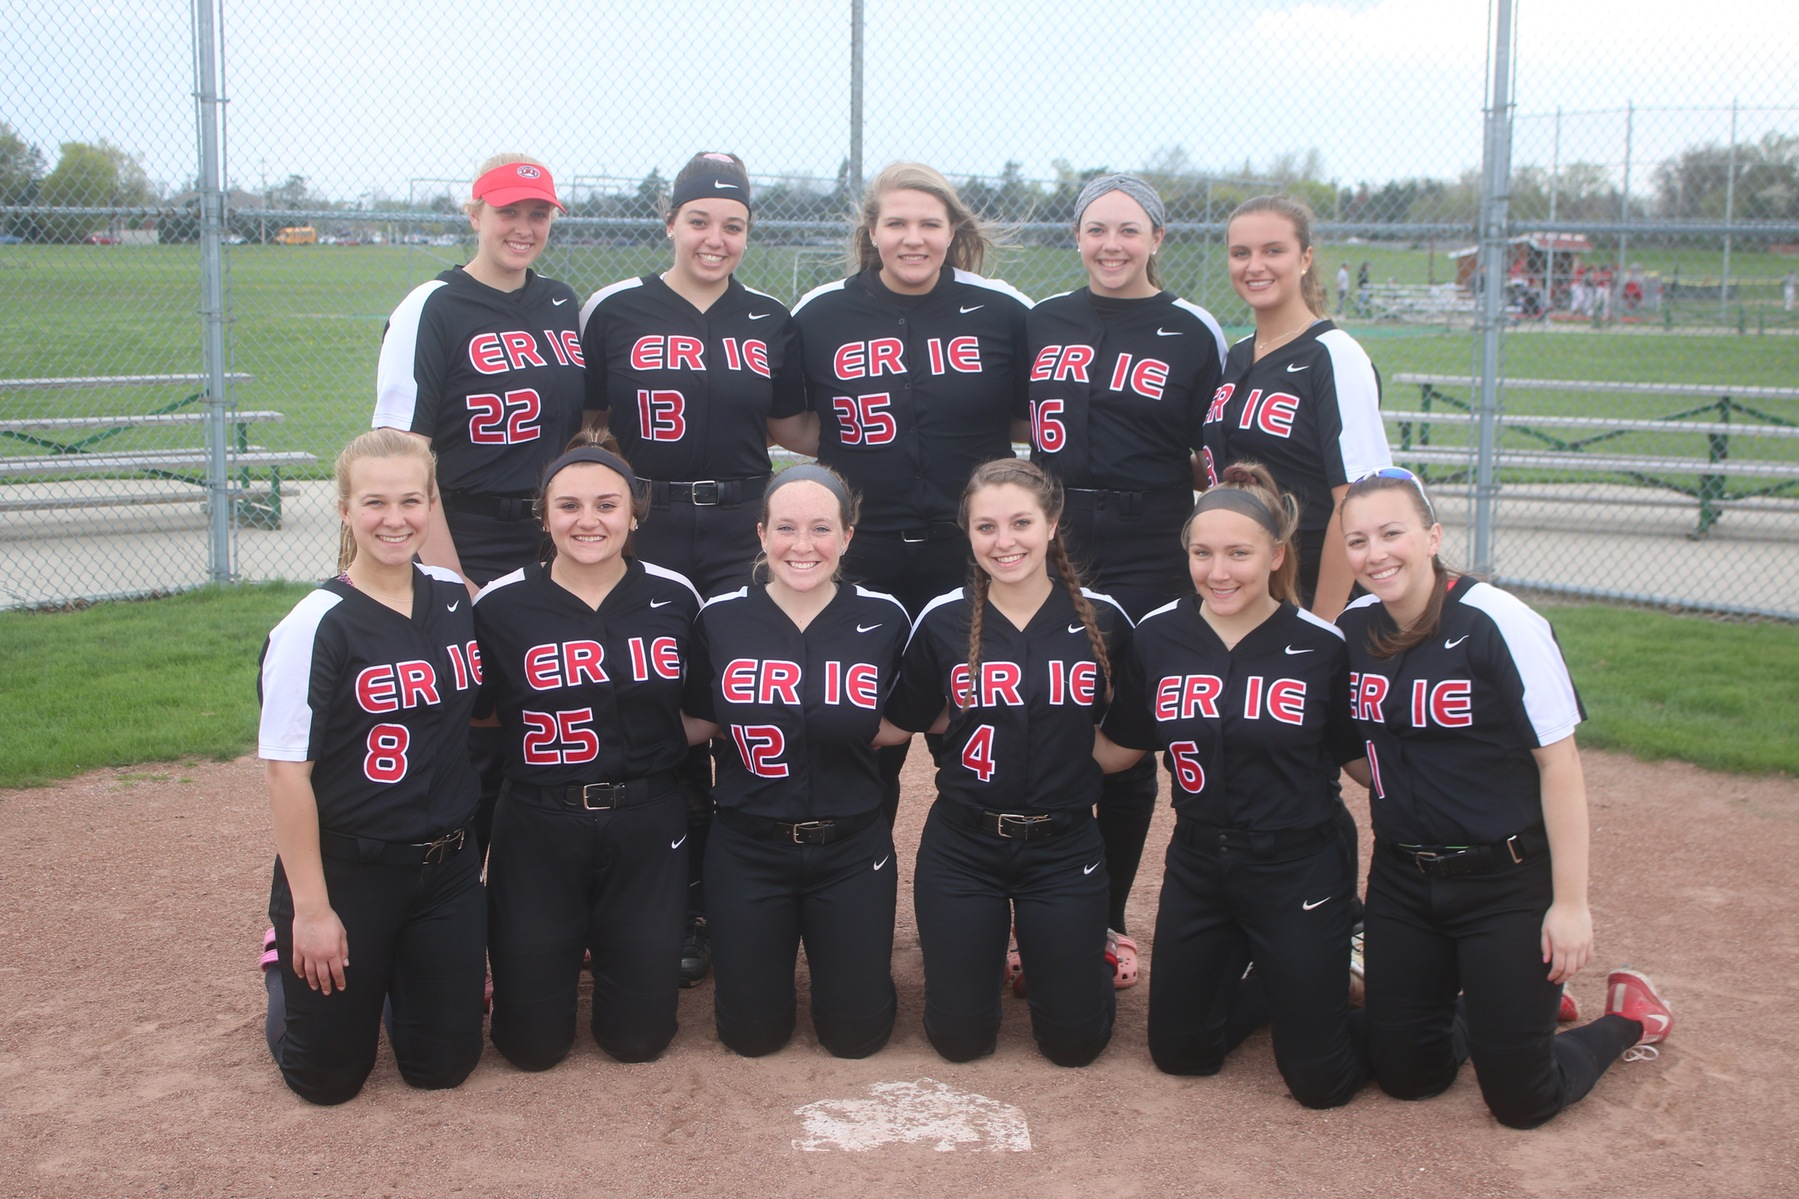 Softball Ends Season With Loss to Genesee Community College In Sub-Regional